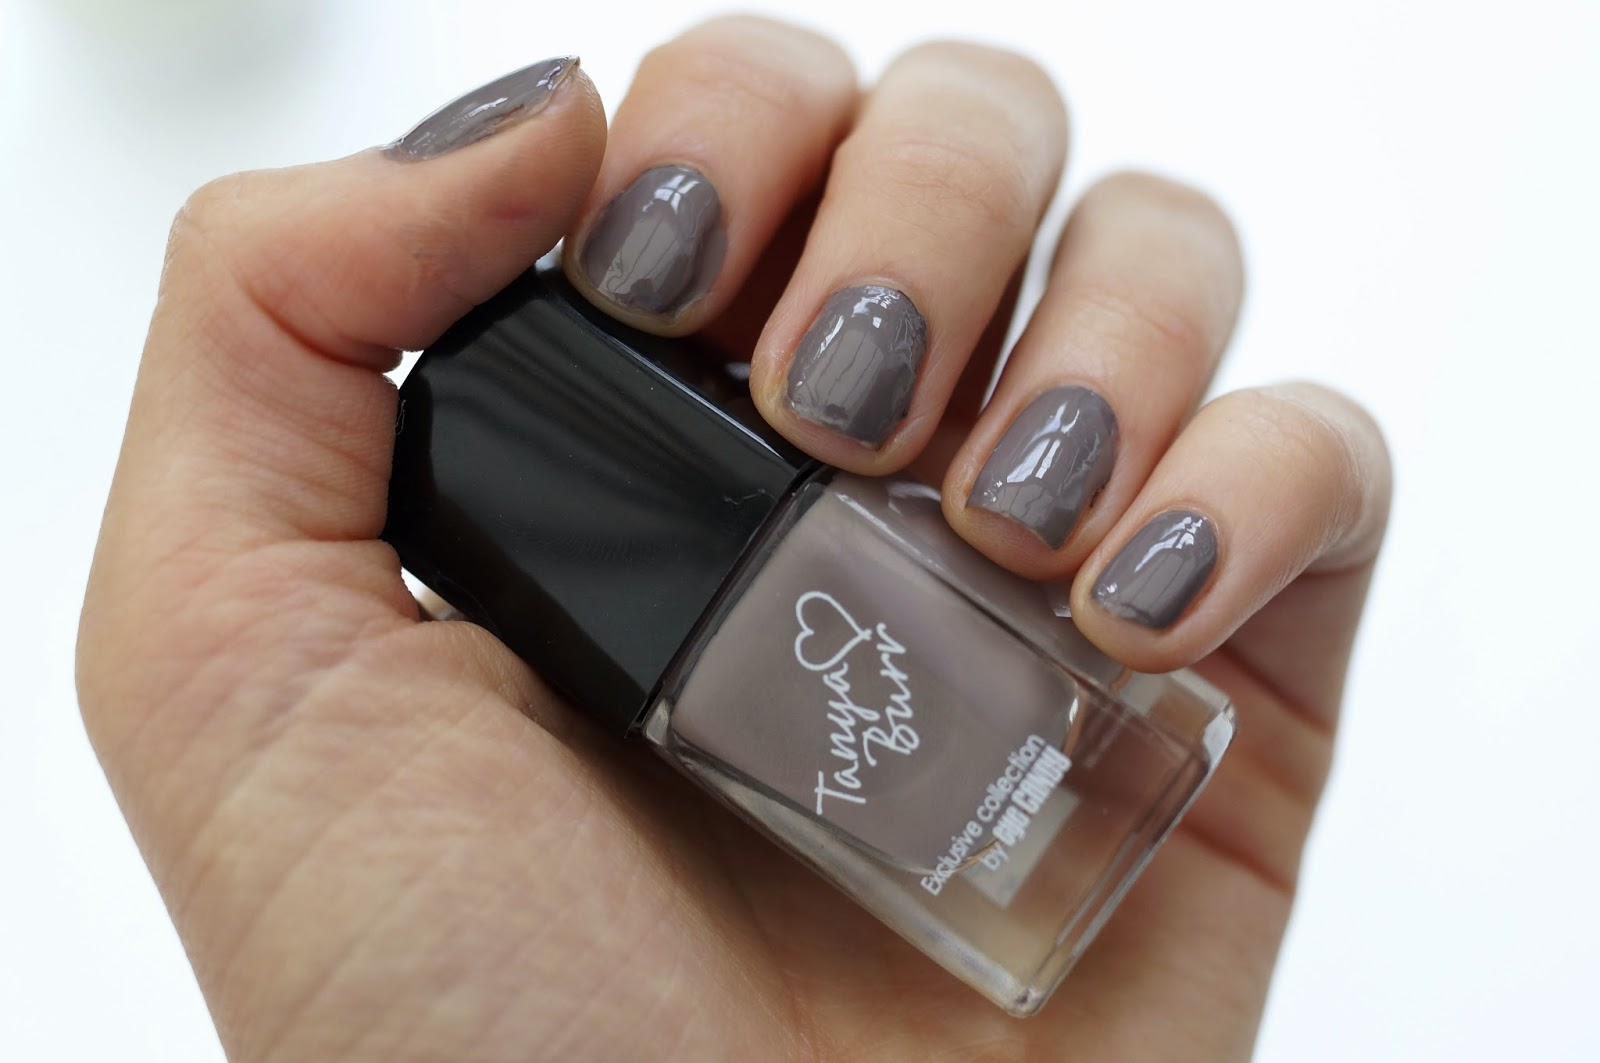 tanya burr nail varnish penguin chic